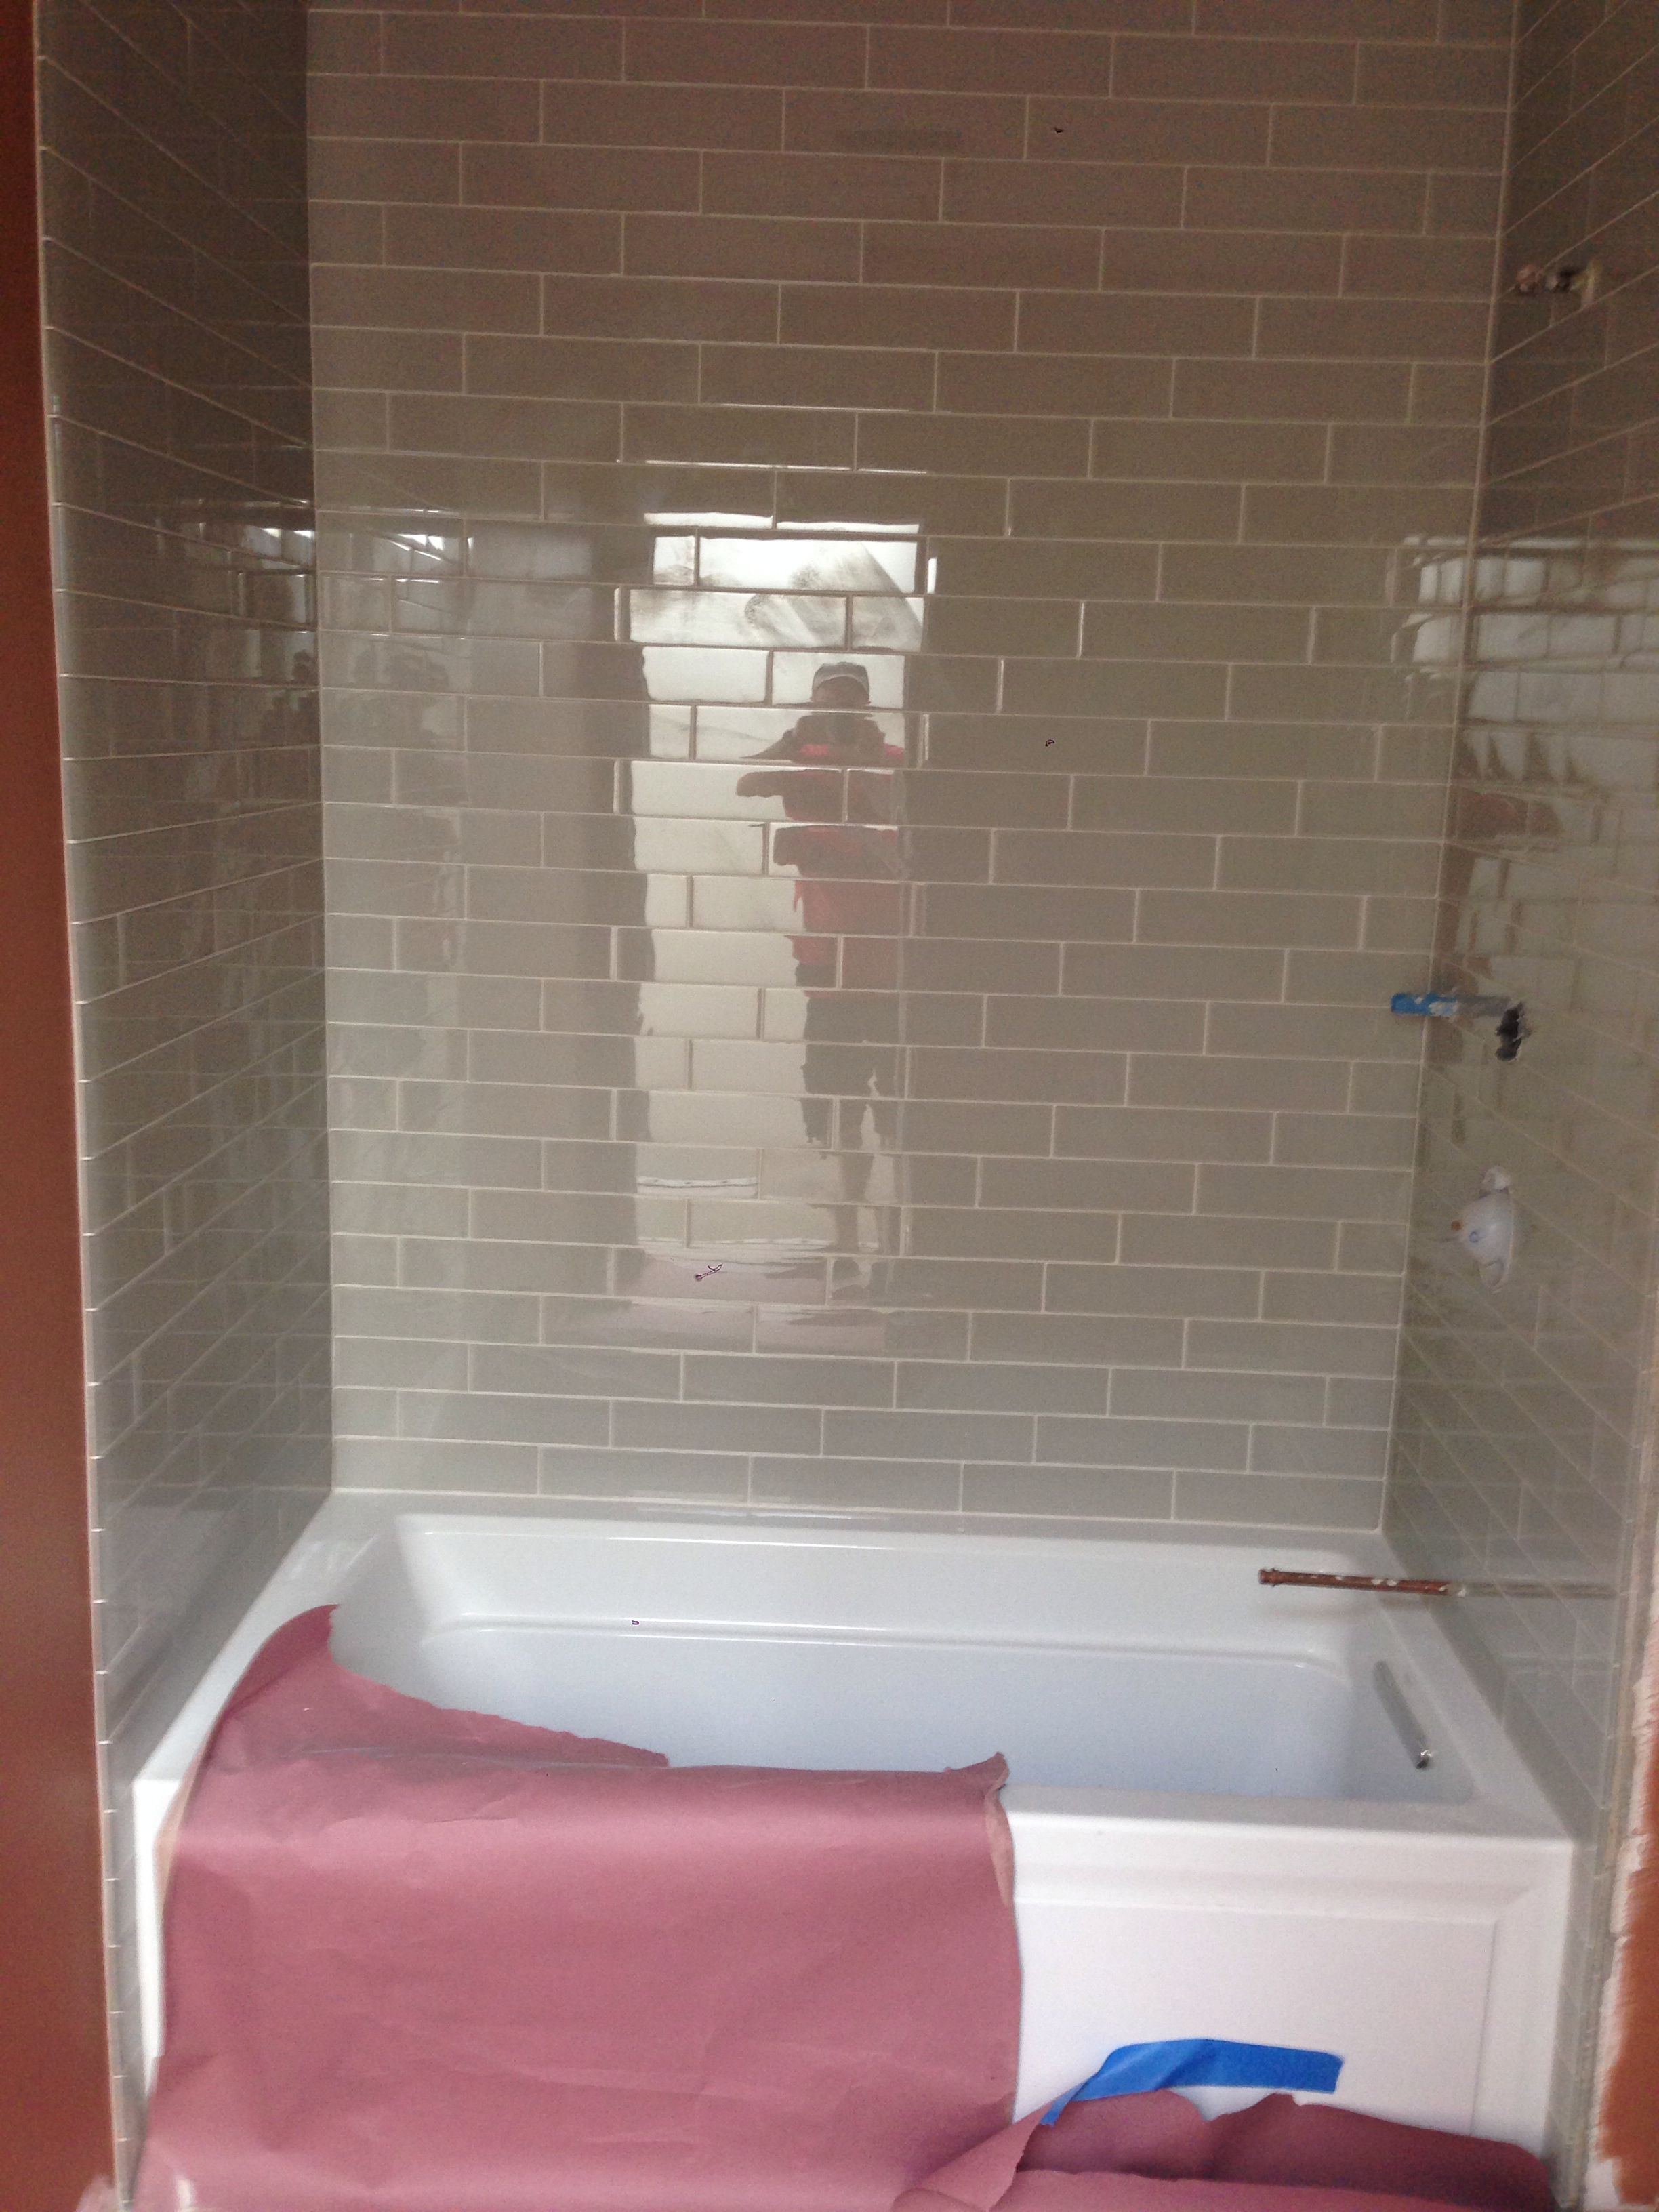 3rd floor bath room glass tile, air bubble tub | Charlestown House ...